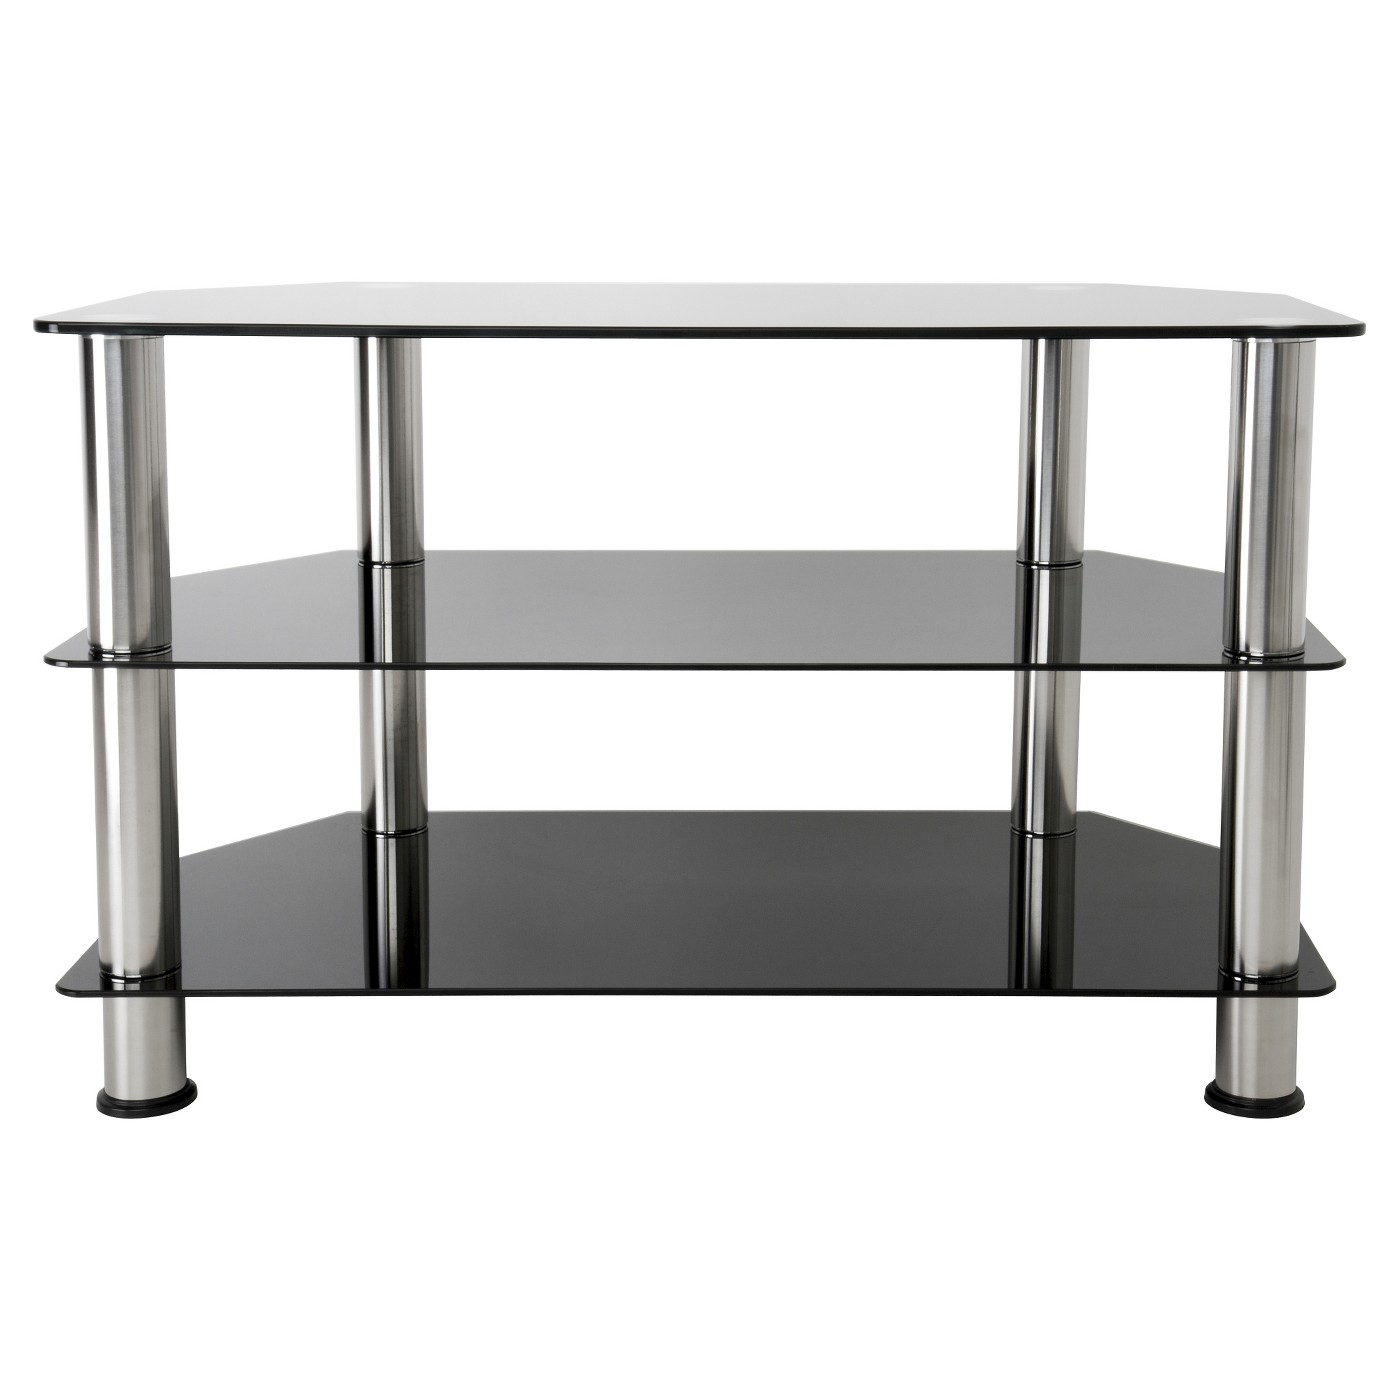 42 Tv Stand With Glass Shelves Silver Black Tv Stand With